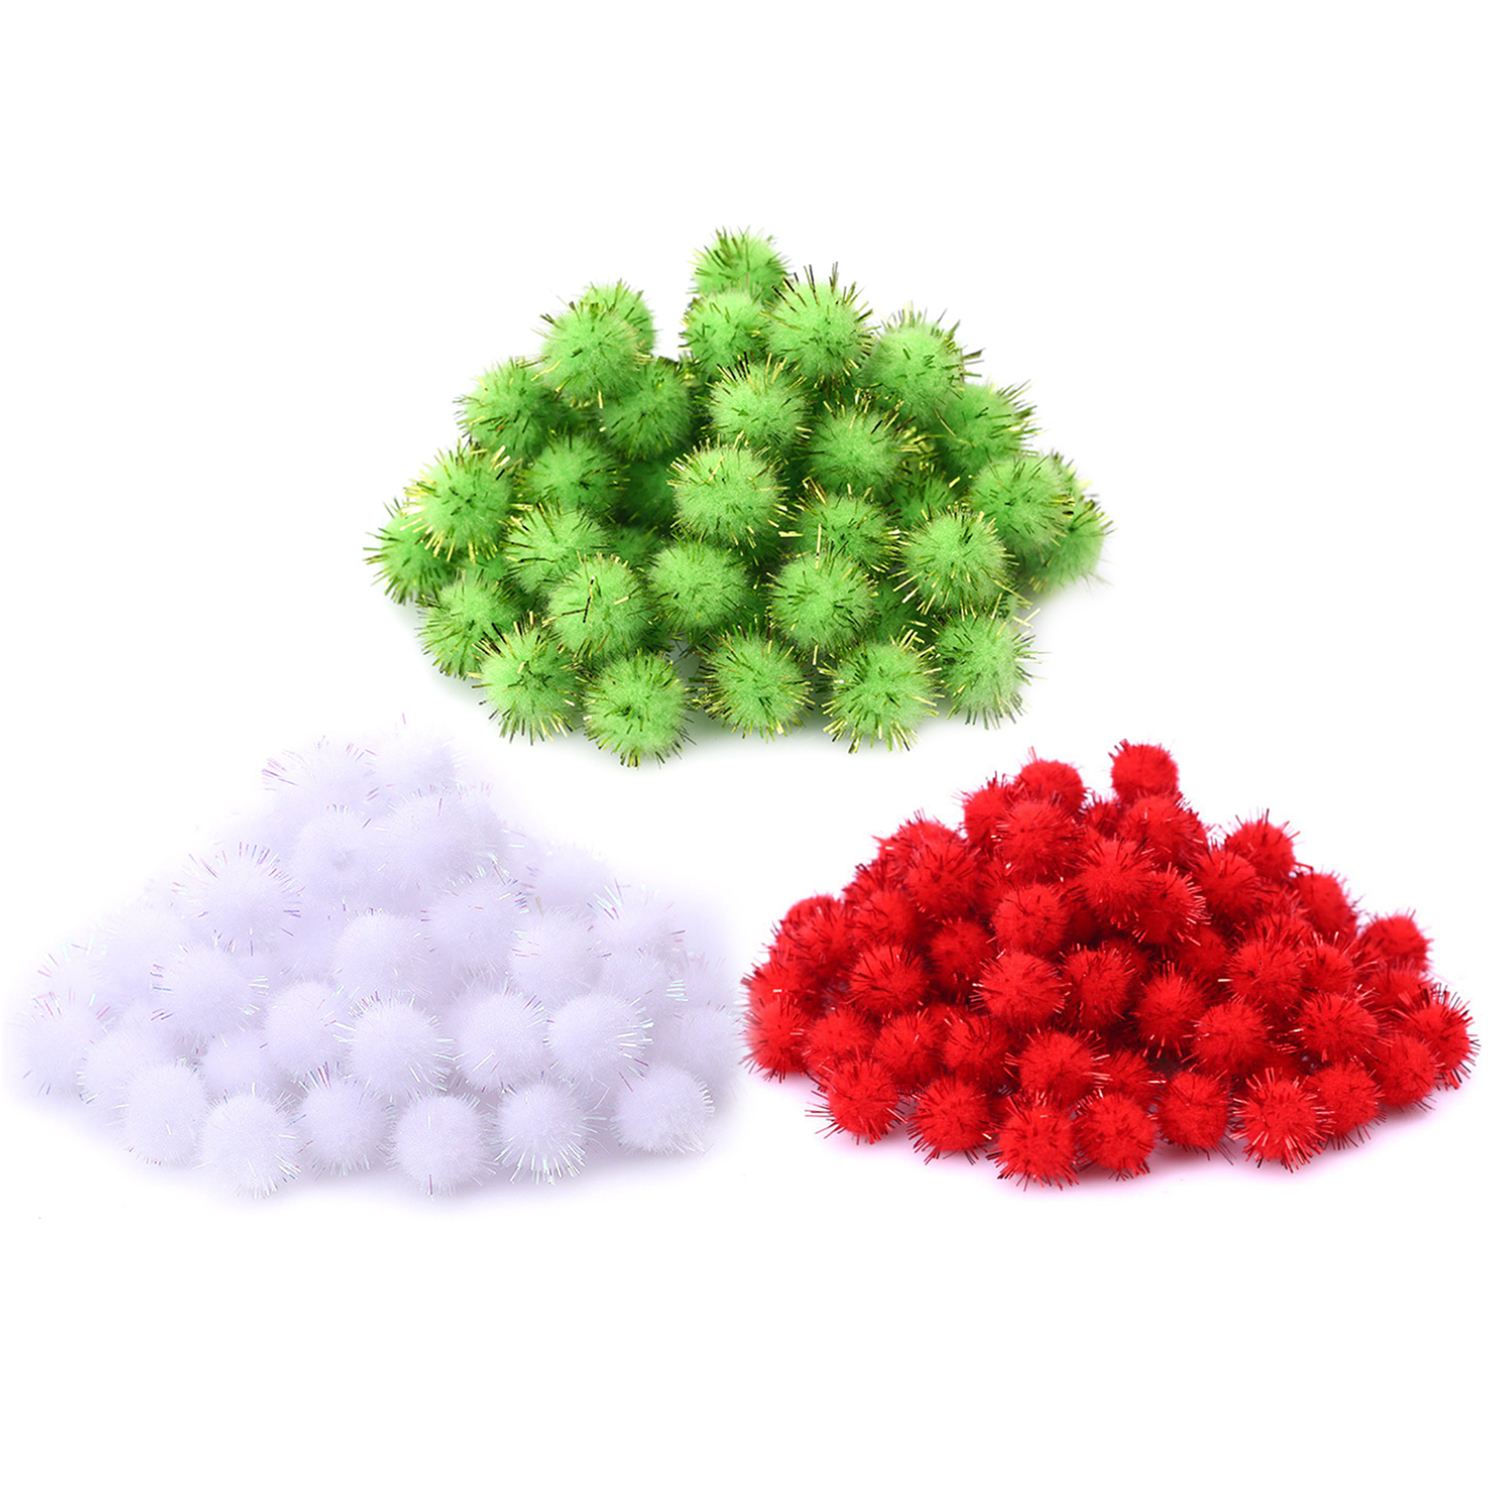 300PCS Colorful Shining Bling Soft Fluffy Pom Poms Pompoms Balls Toy For DIY Craft Accessories Home Christmas Party Decoration